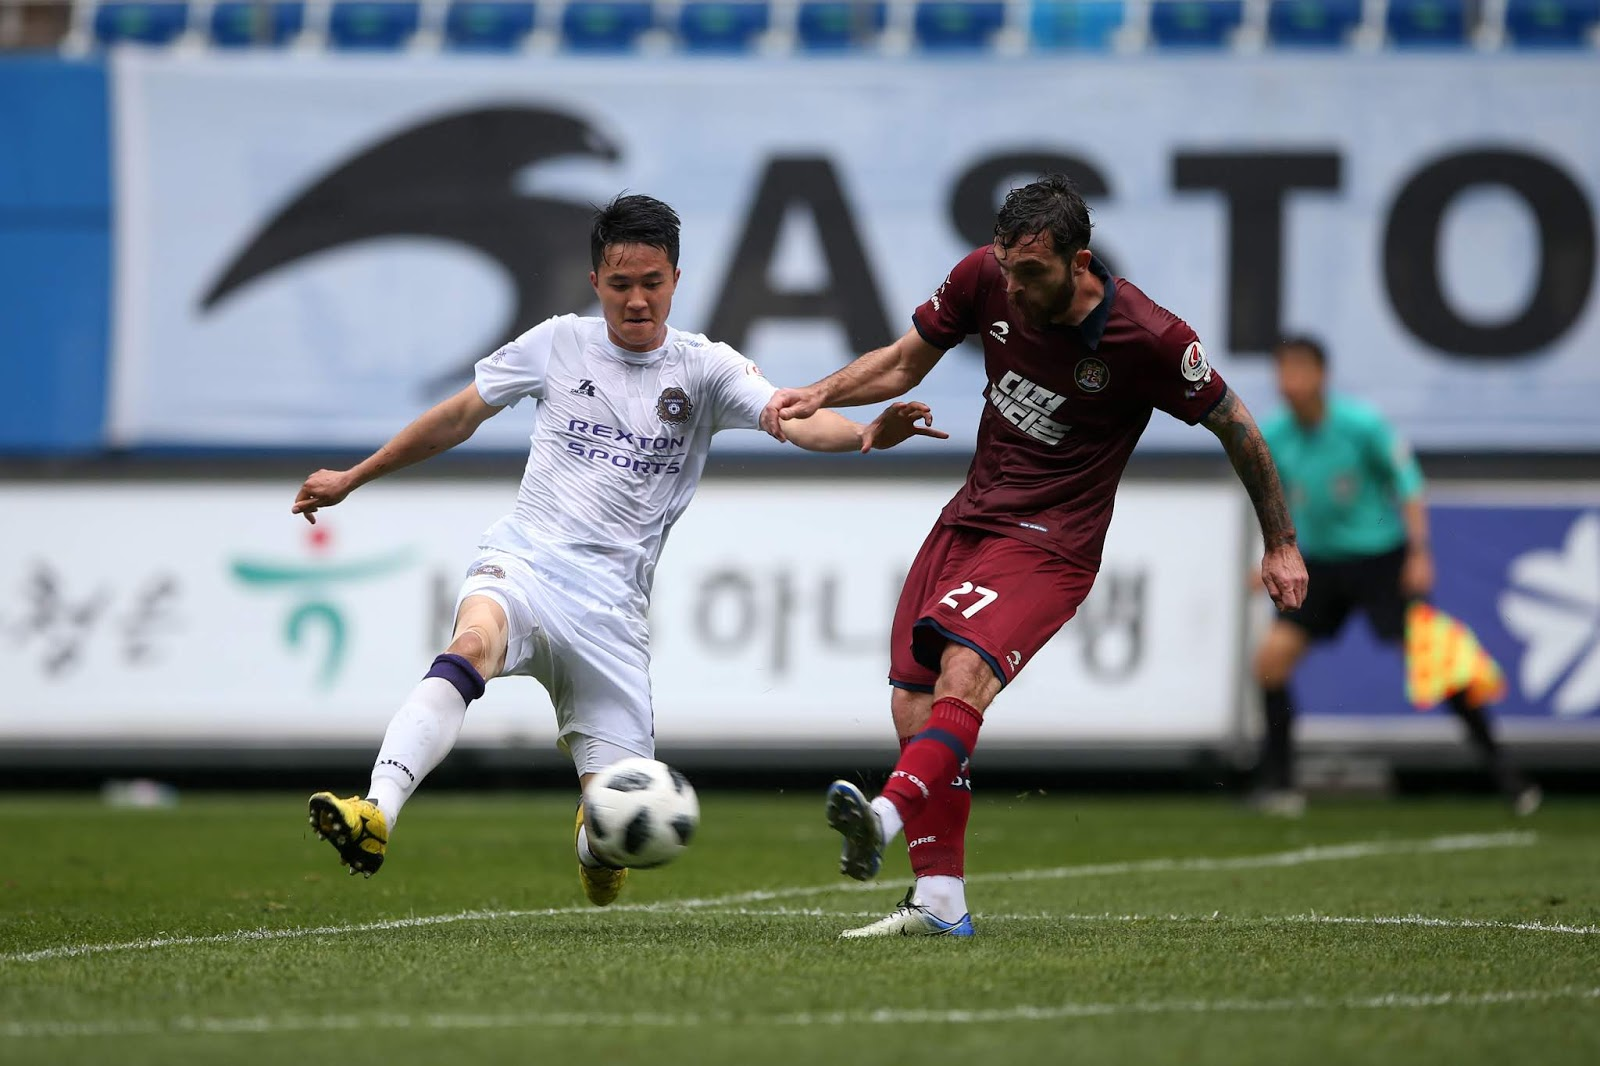 Preview: Daejeon Citizen vs FC Anyang K League 2 Aurelian Chitu Kim Hyeong-jin